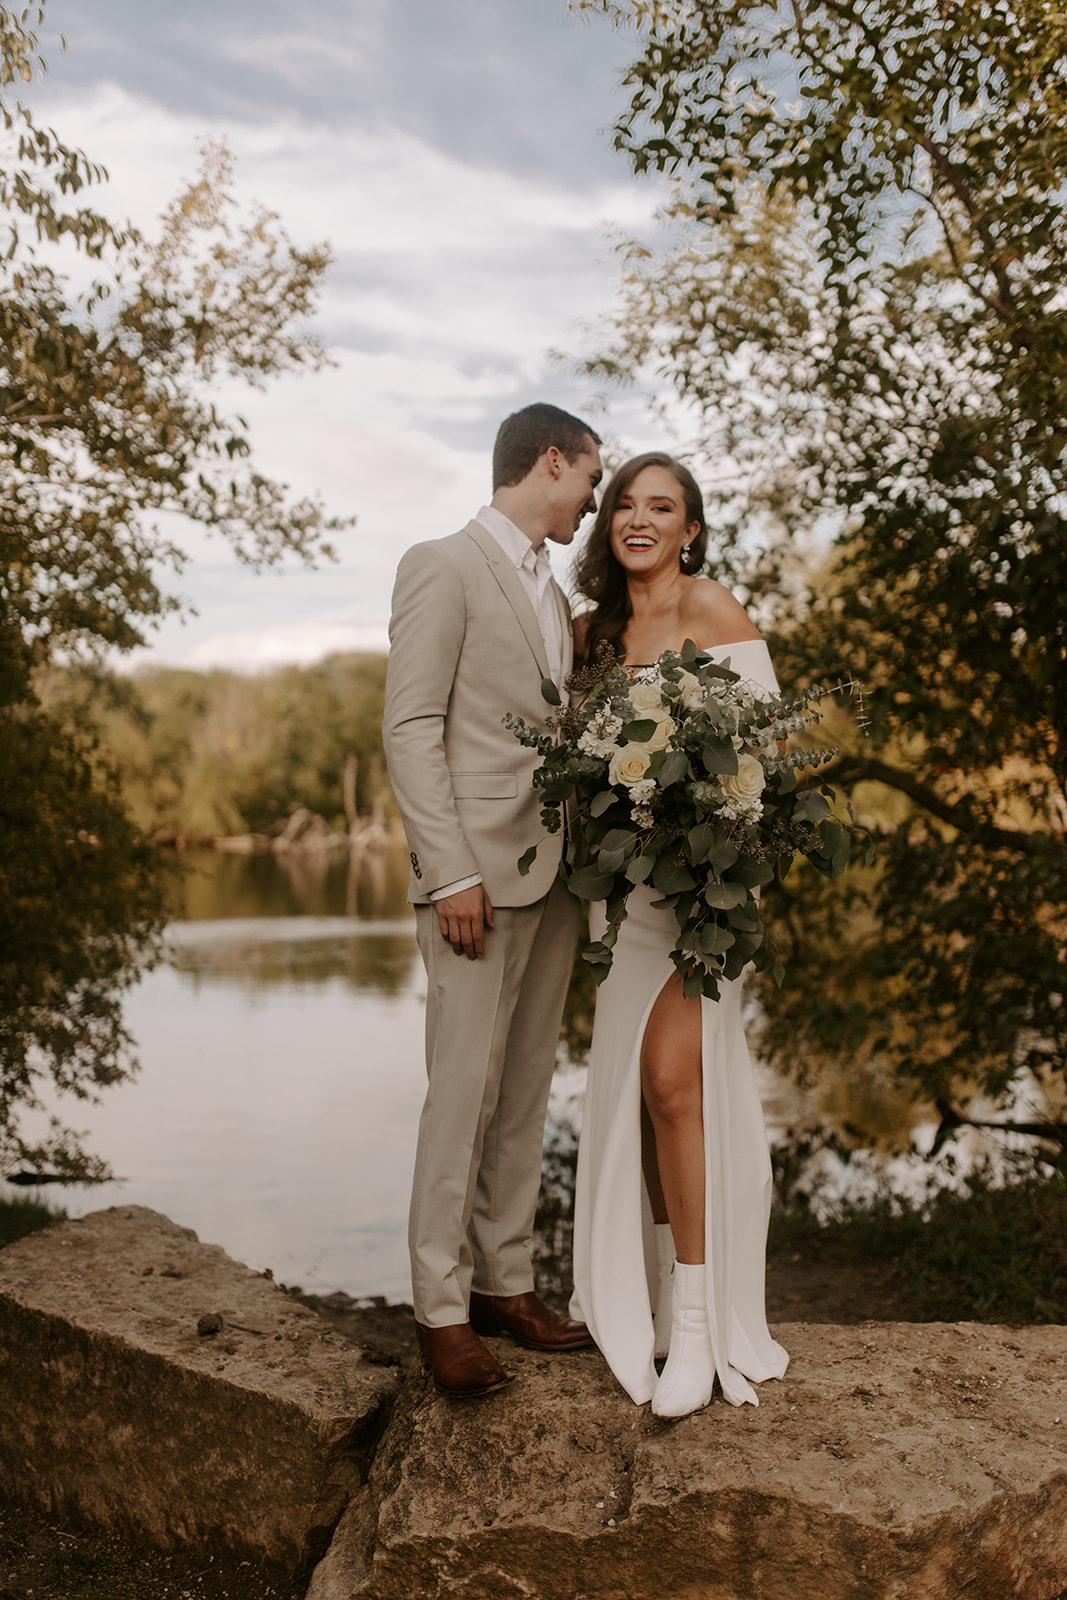 Winter-Fall Elopement- Meme Urbane Photography photos.jpg